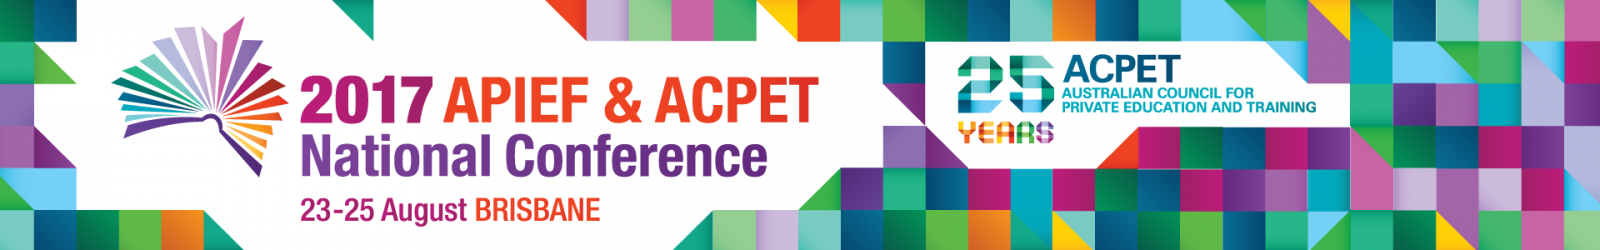 ACPET National Conference 24-25 August in Brisbane